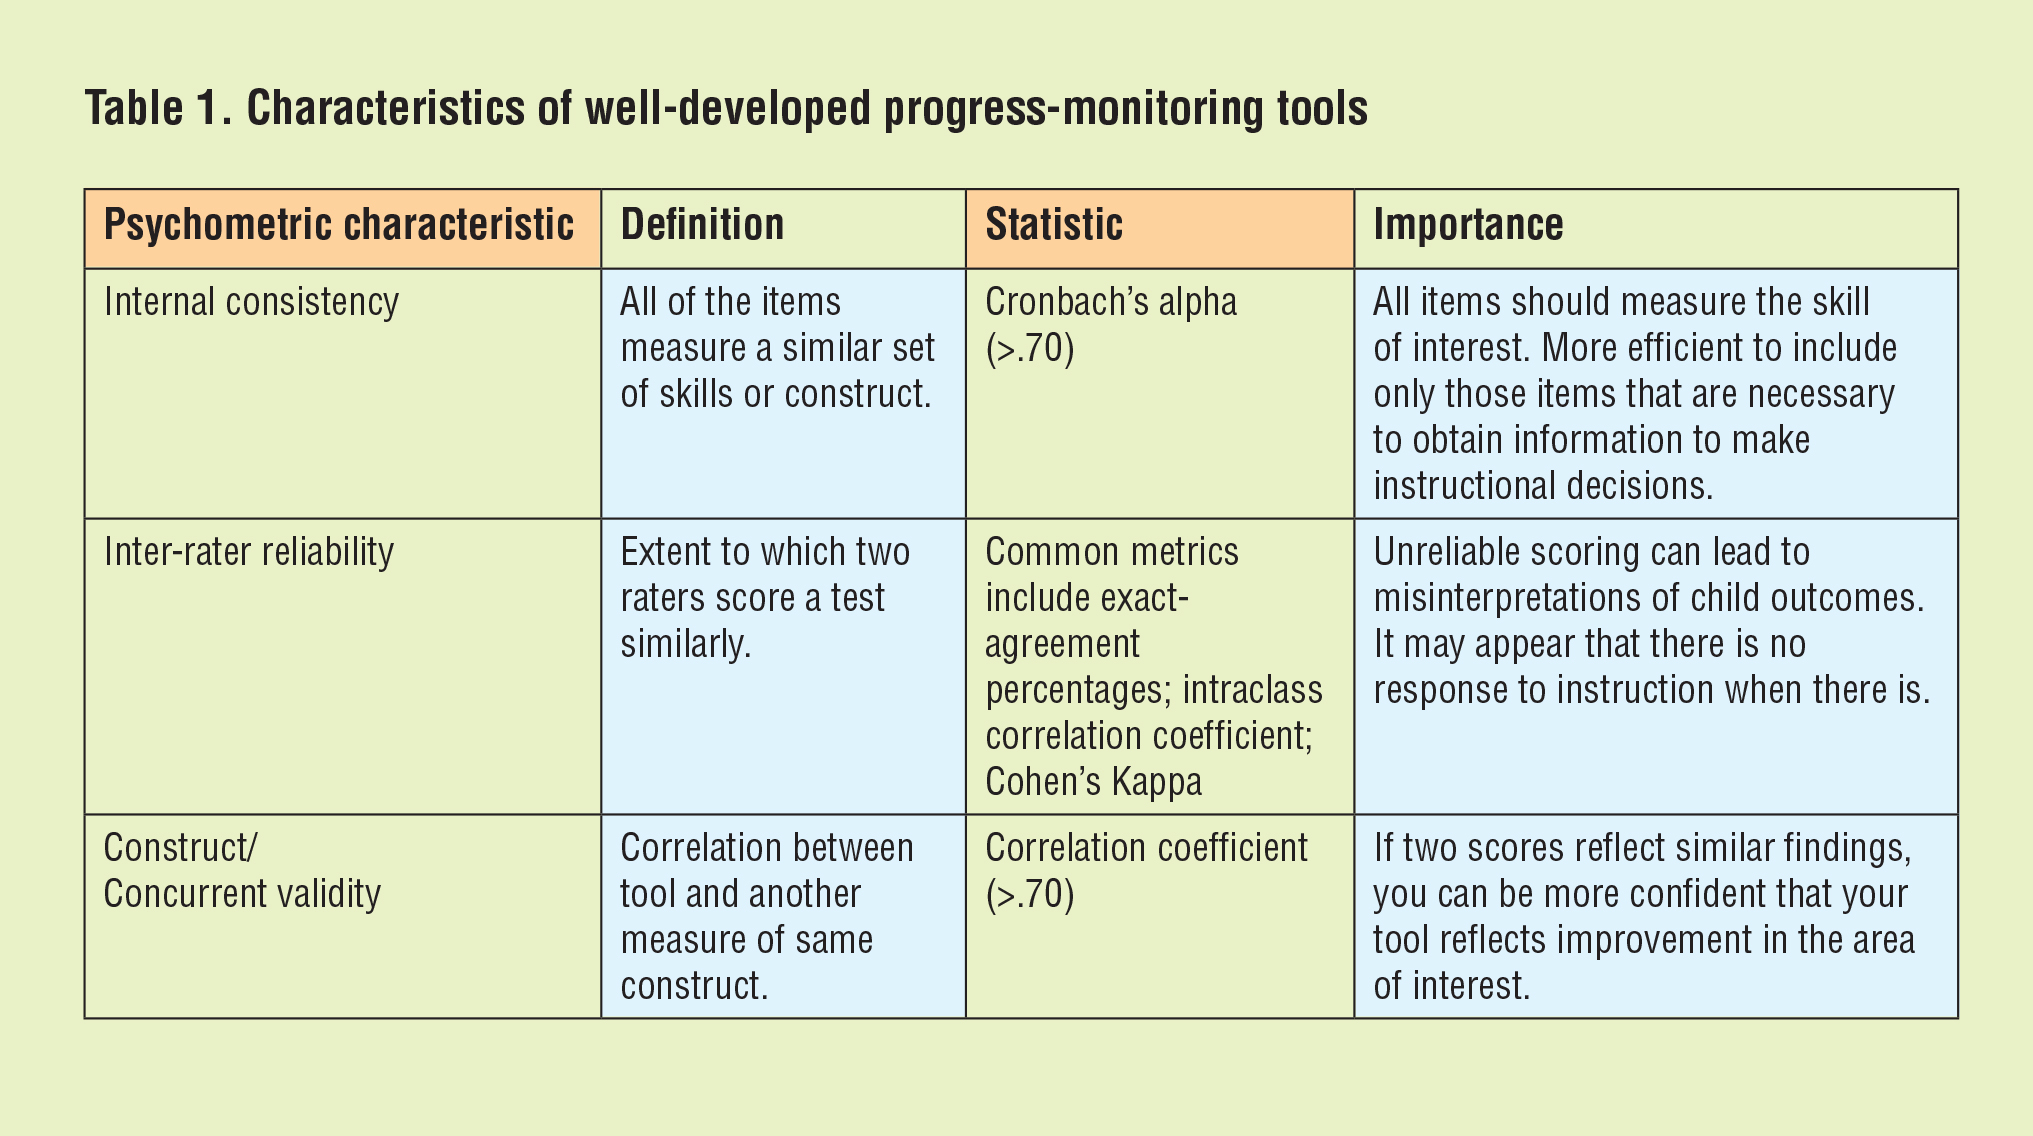 Study Rti Practice Falls Short Of >> Rti Progress Monitoring Tools Assessing Primary Grade Students In